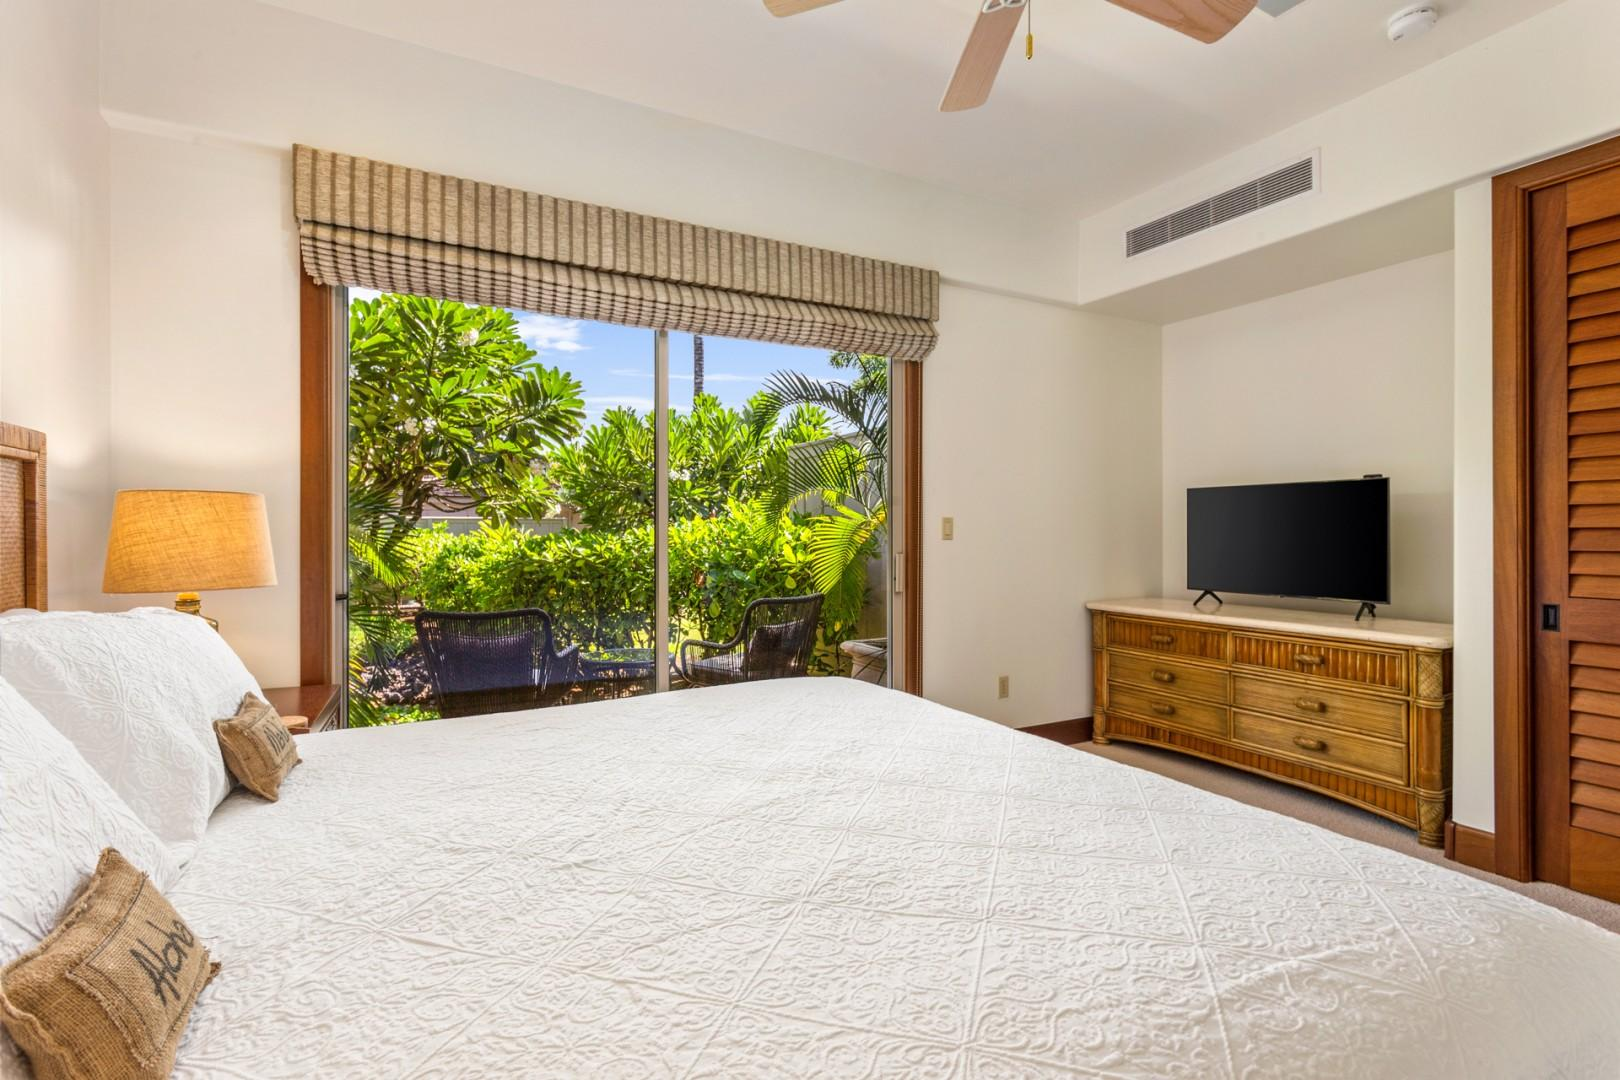 Alternate view of second bedroom showcasing private patio and flatscreen television.